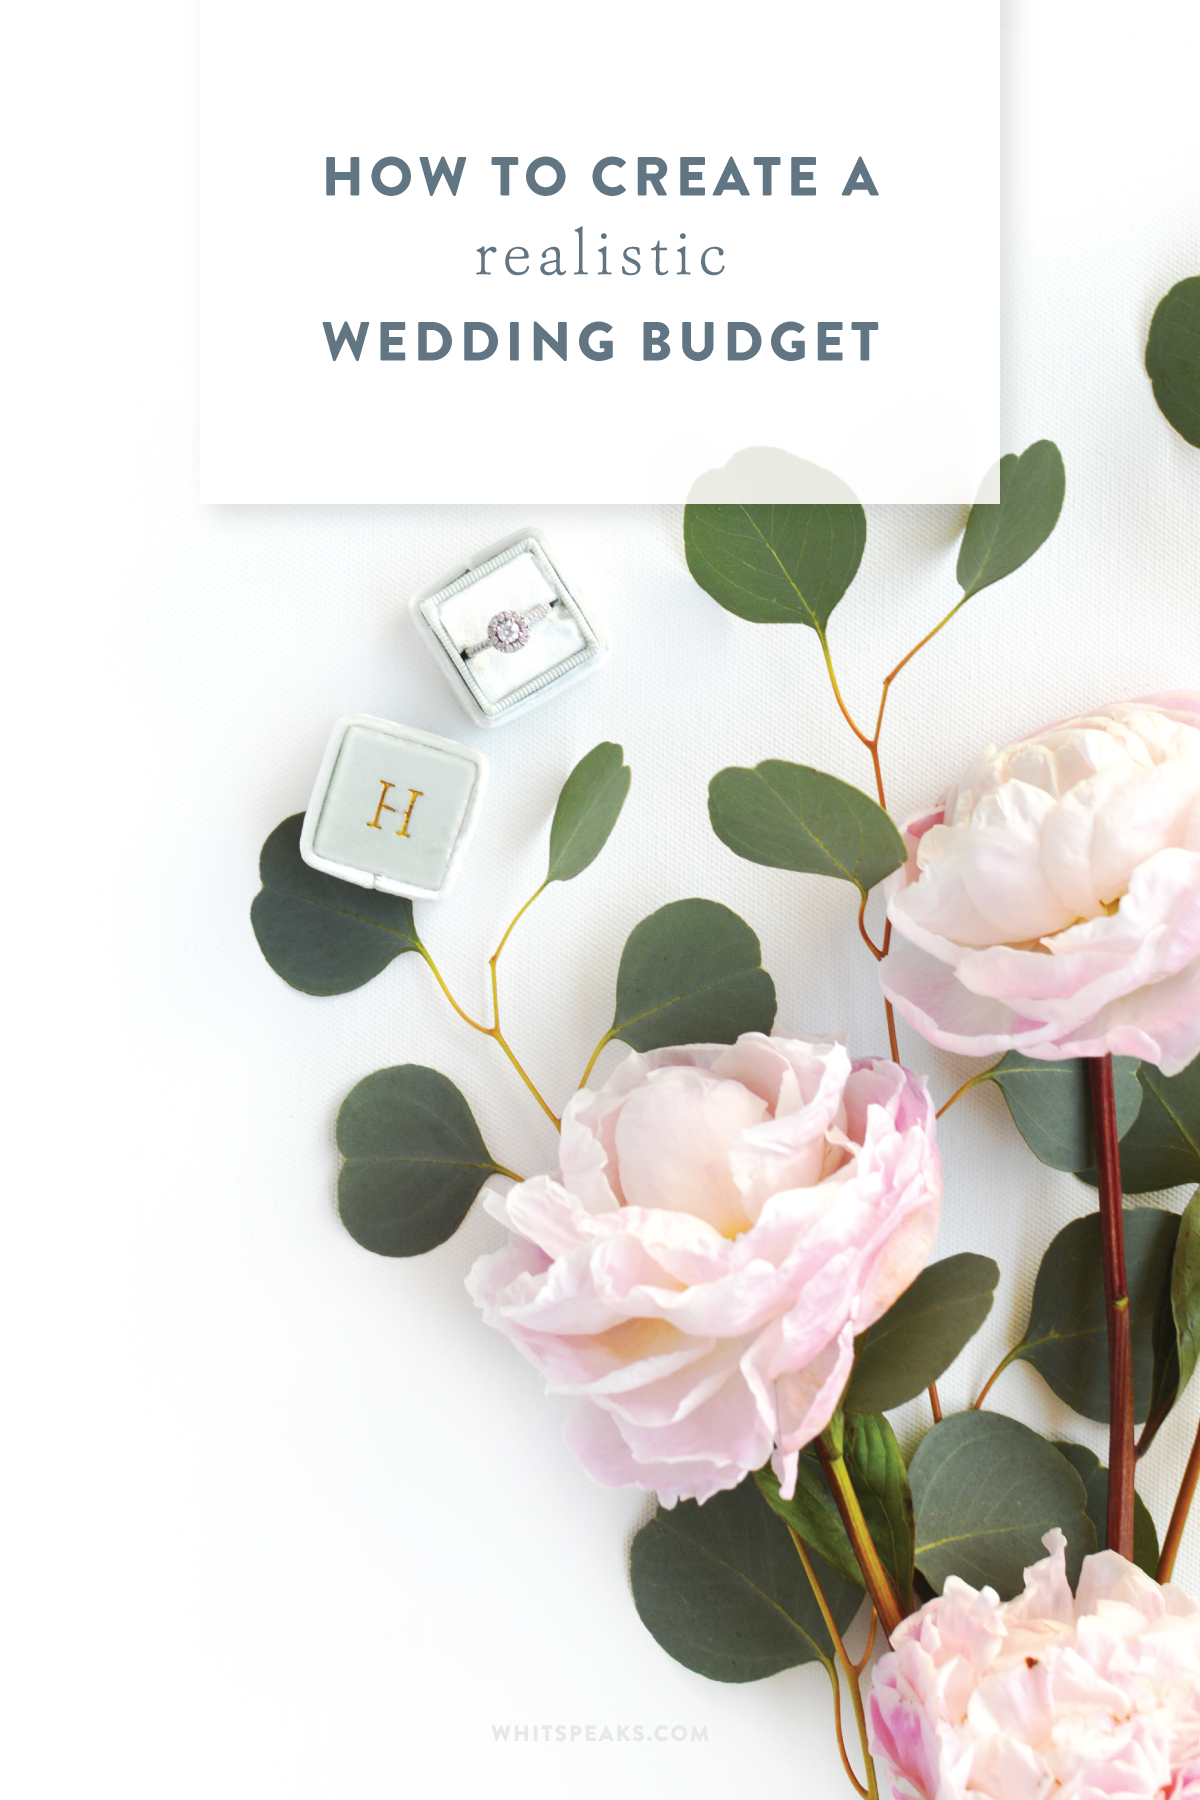 Wedding Budget - How to